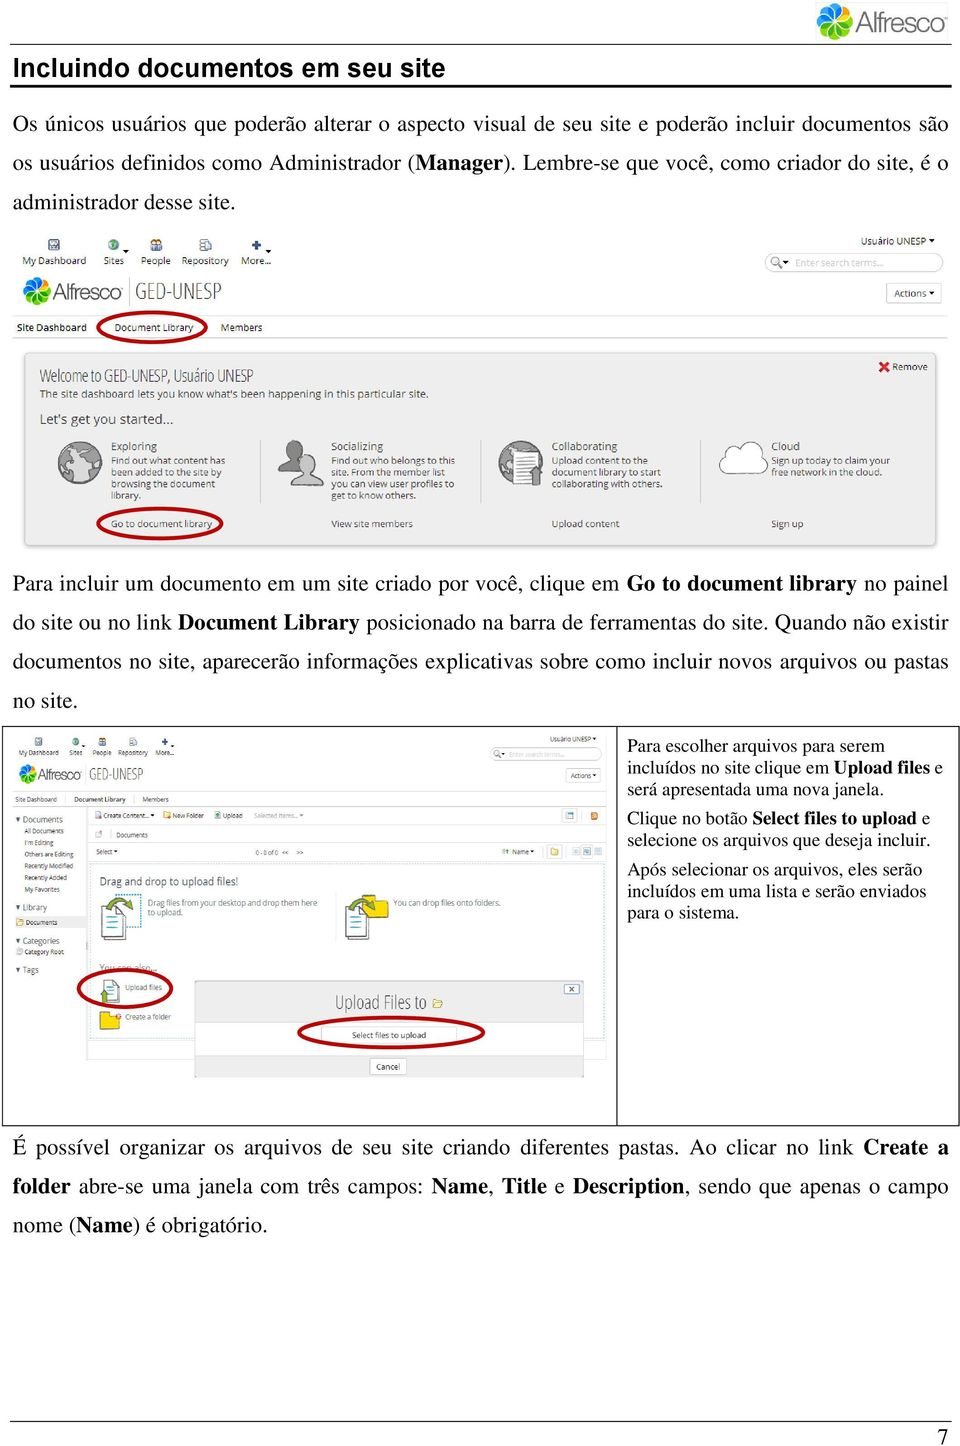 Para incluir um documento em um site criado por você, clique em Go to document library no painel do site ou no link Document Library posicionado na barra de ferramentas do site.